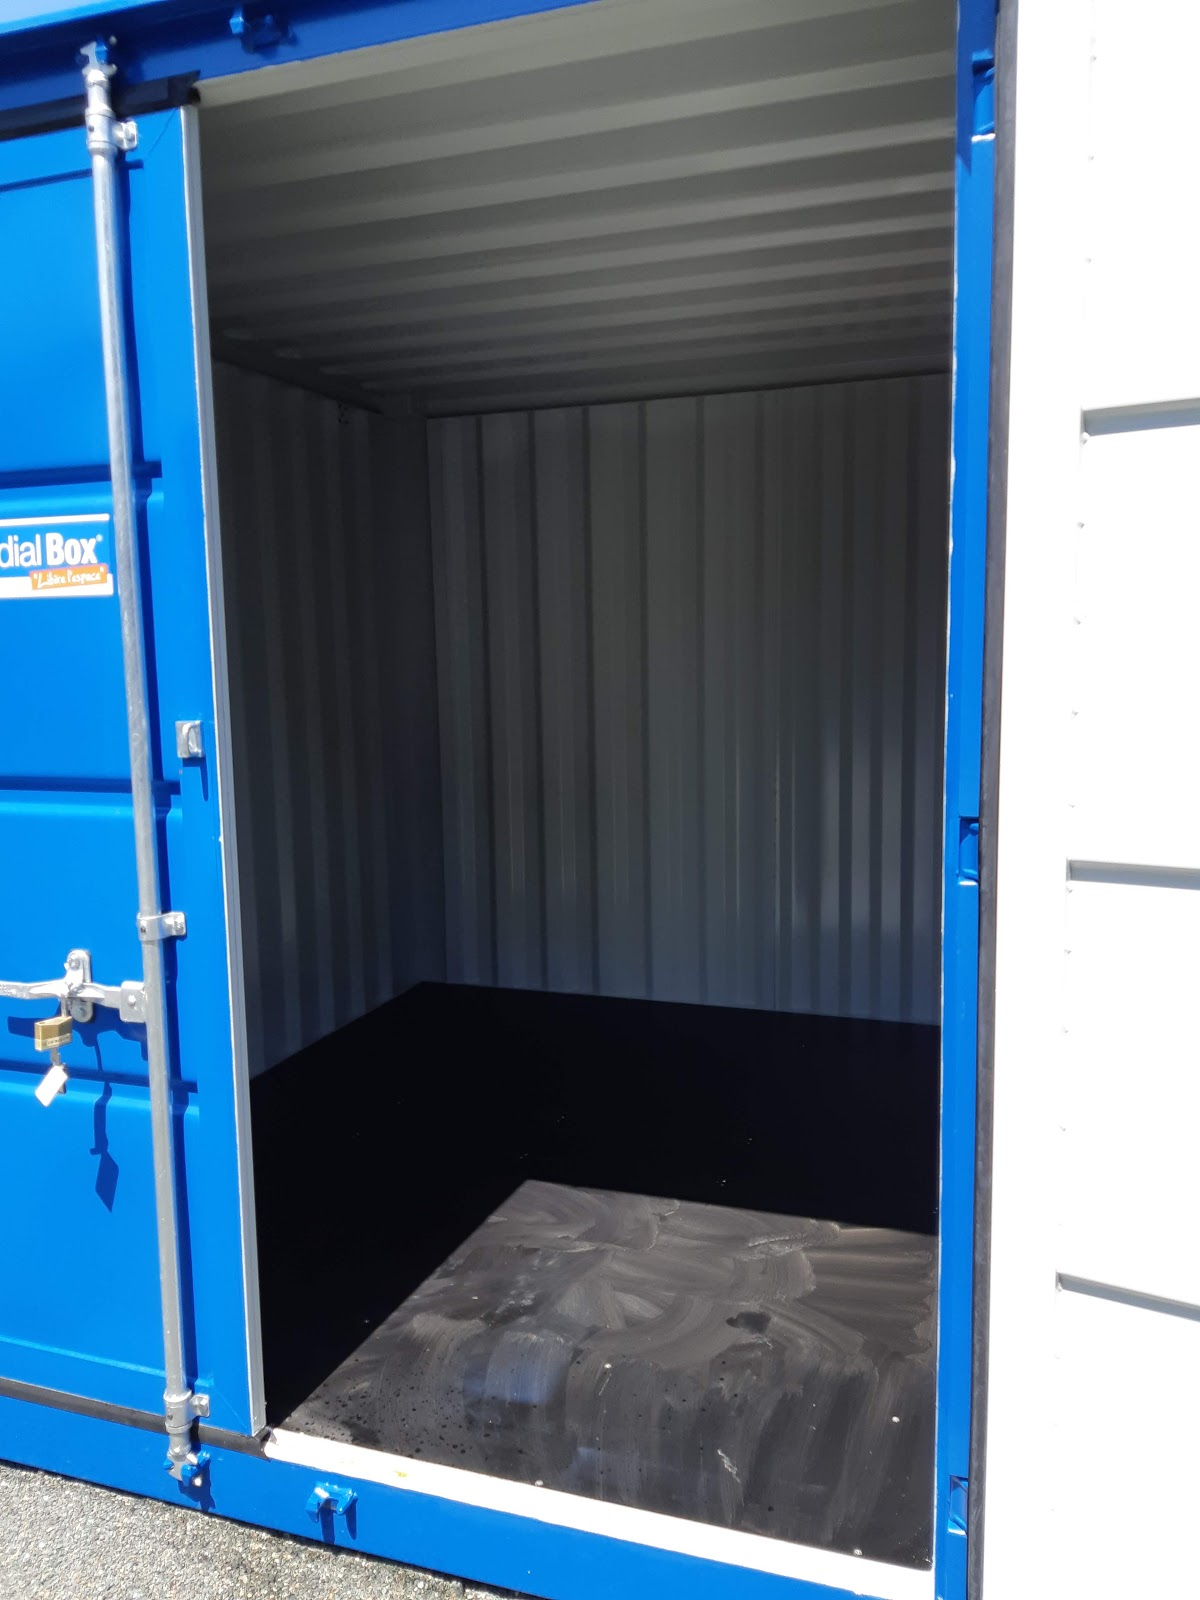 self stockage drive a cholet garde